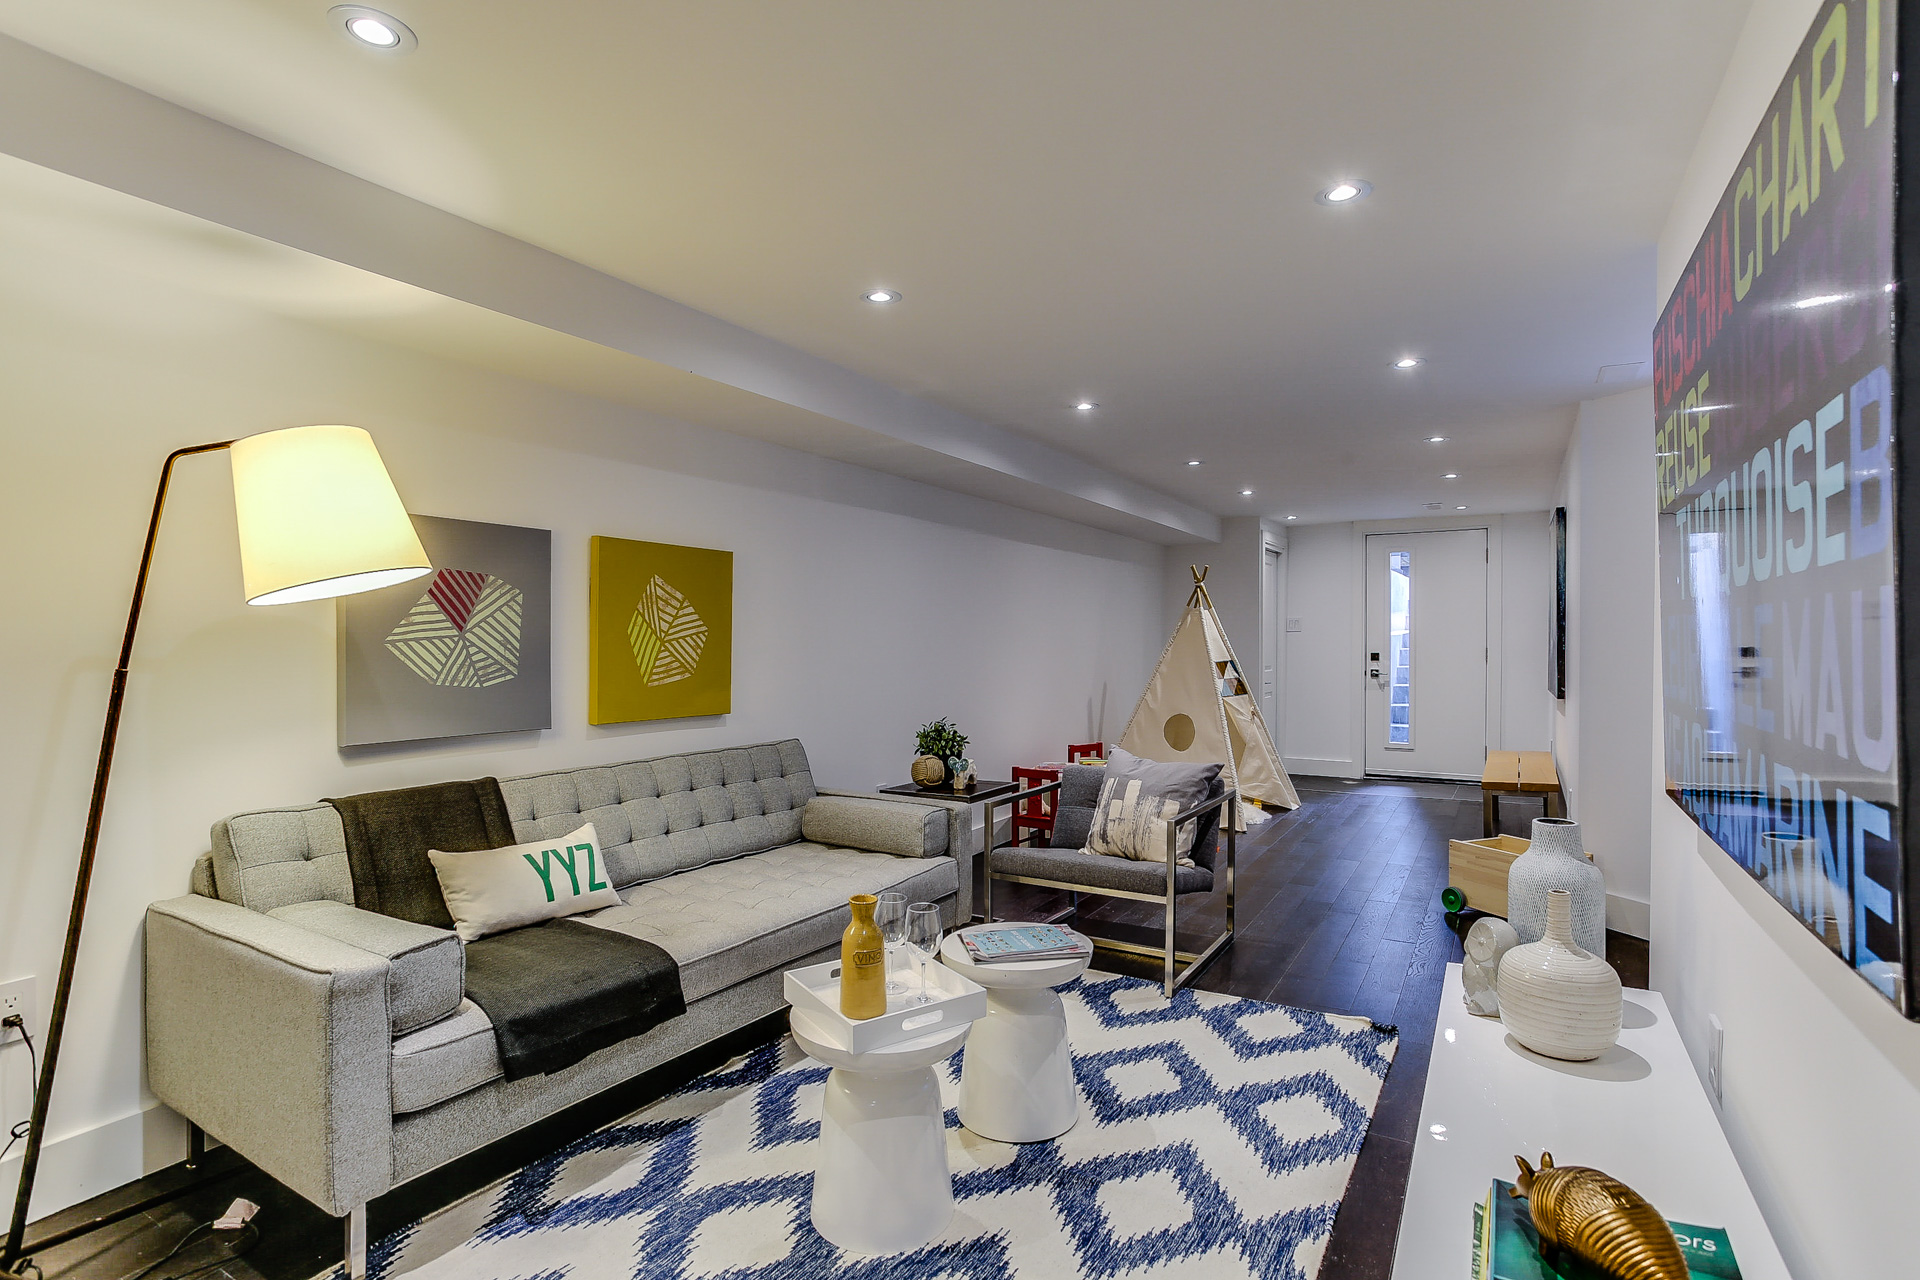 New Home Staging - Media Room